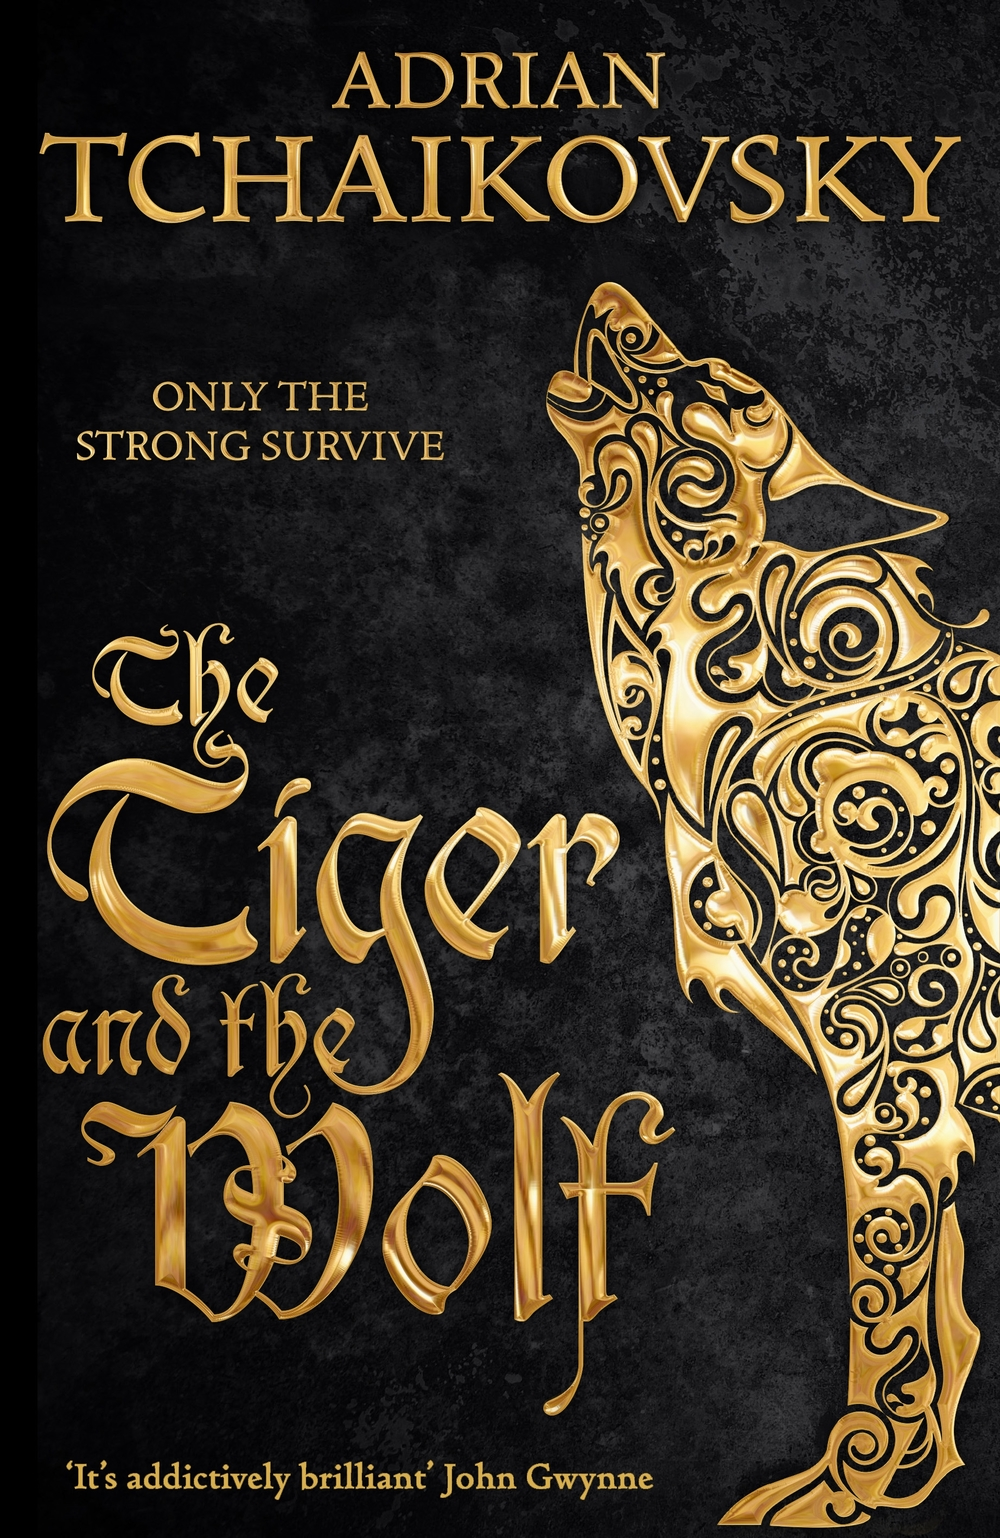 9781447234579The Tiger and the Wolf.jpg